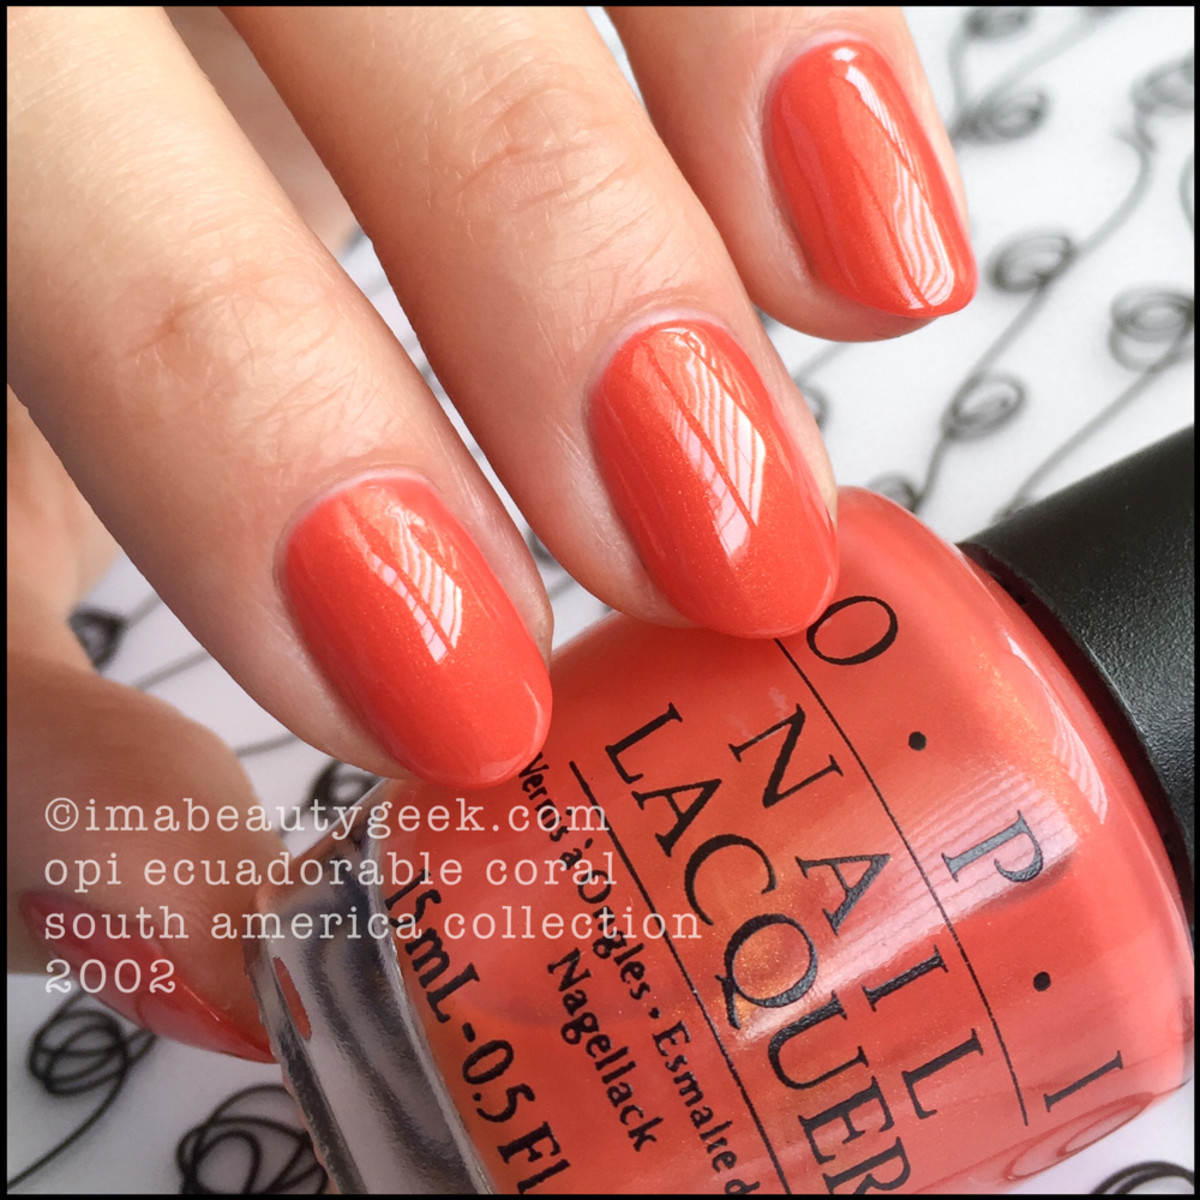 OPI Ecuadorable Coral_OPI South America Collection 2002 BLOPI